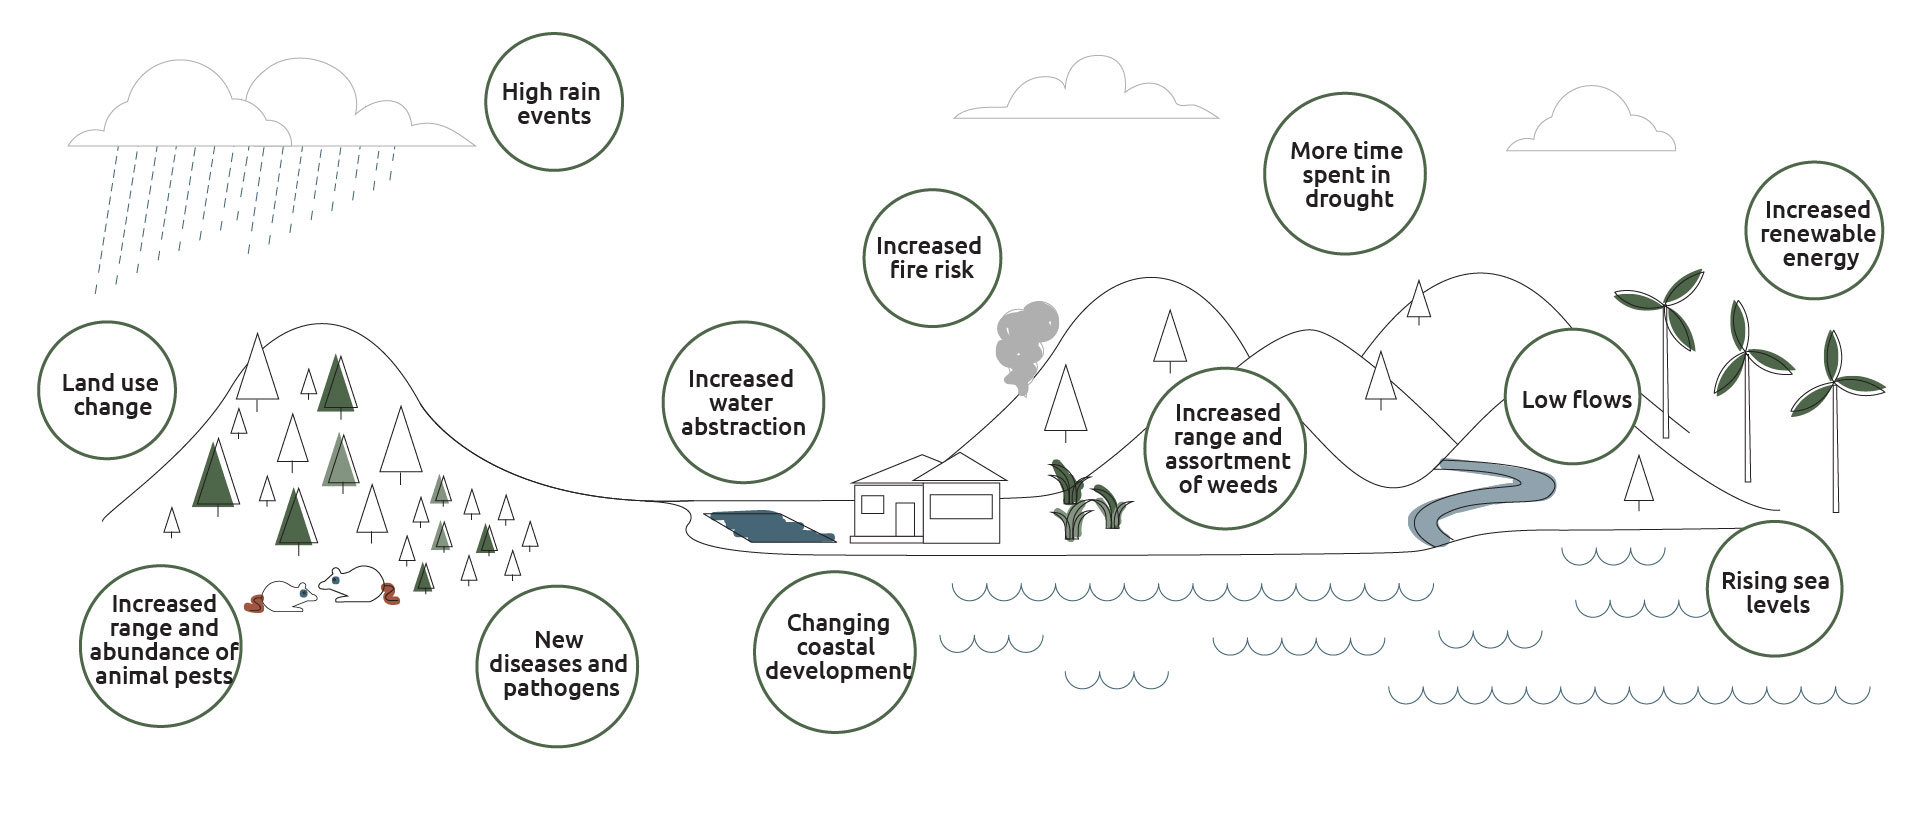 Infographic of the impacts of climate change on a landscape. There area a wide range of issues shown in bubbles across the landscape.